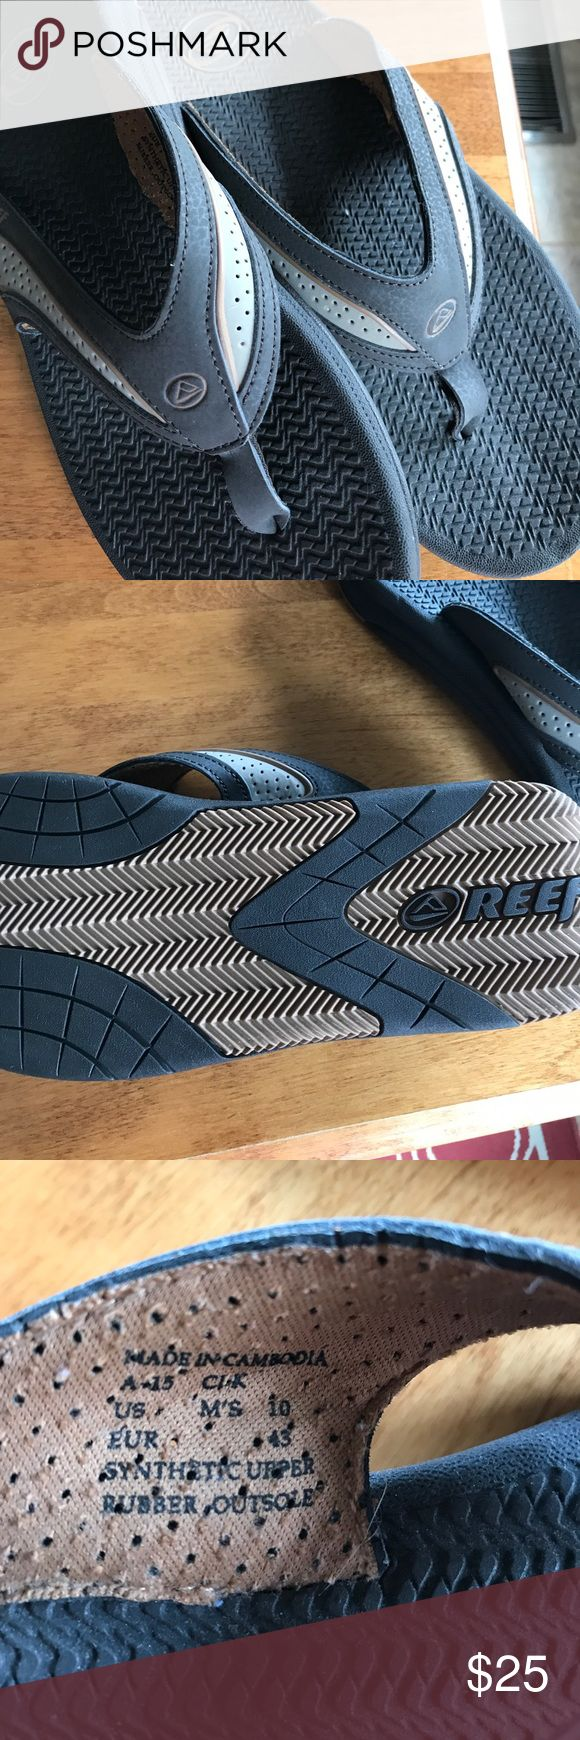 Reefs.  Never worn Brown reefs flip flops for men. Bought in Hawaii Shoes Sandals & Flip-Flops